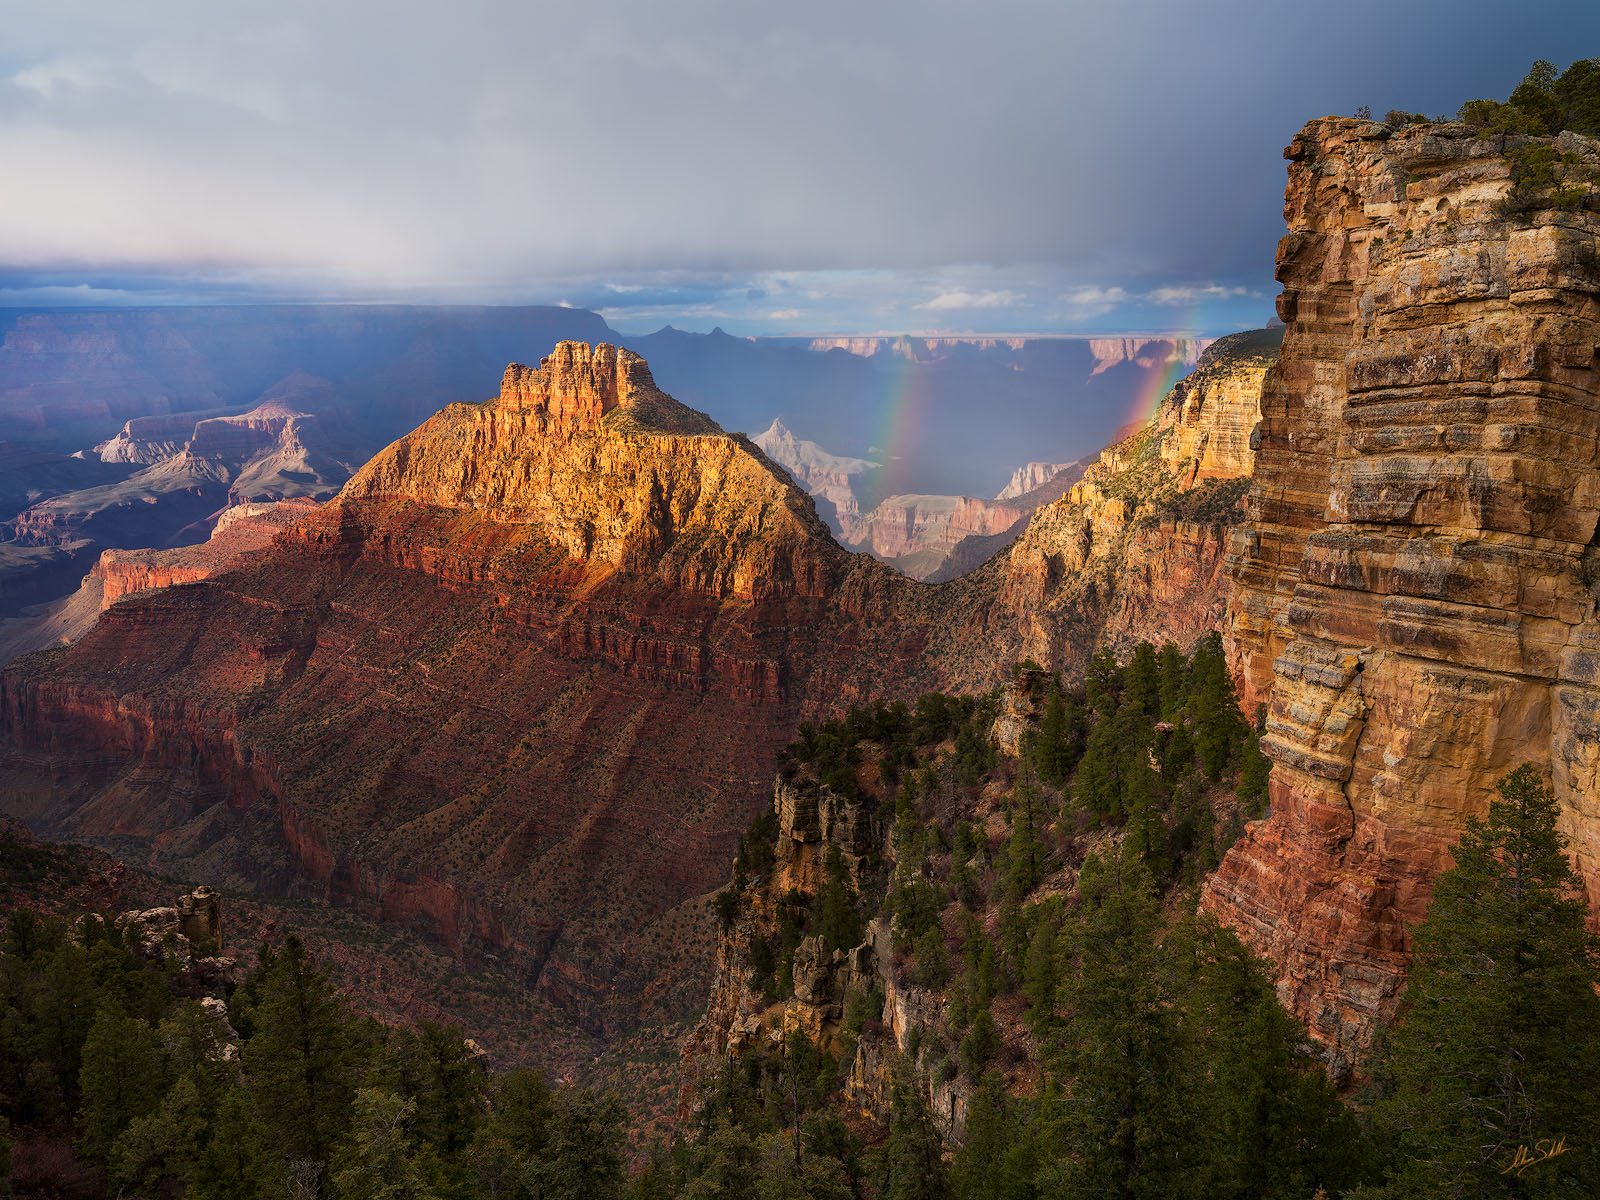 Double rainbows appear as a storm moves across the Grand Canyon. The large feature in the canyon is Coronado Butte, which is...